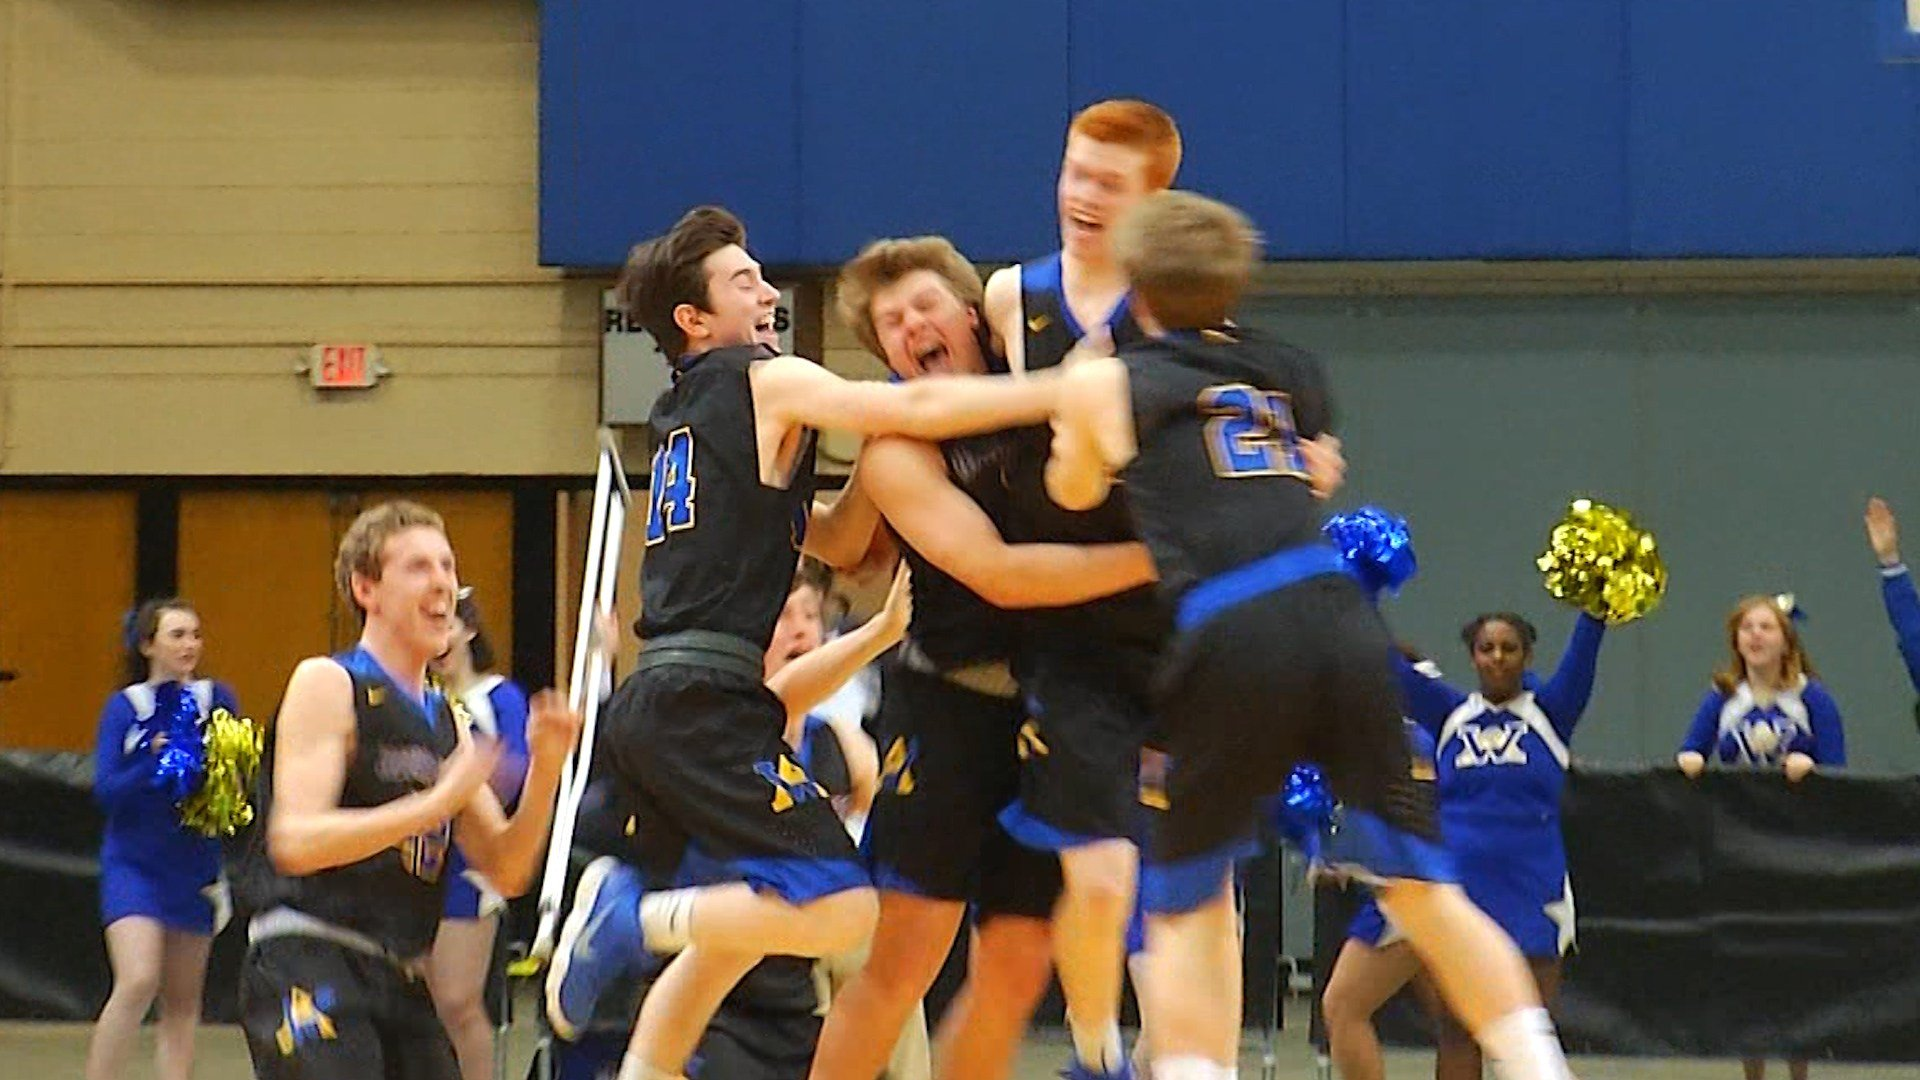 Western Albemarle advanced to the state championship game for the first time in school history